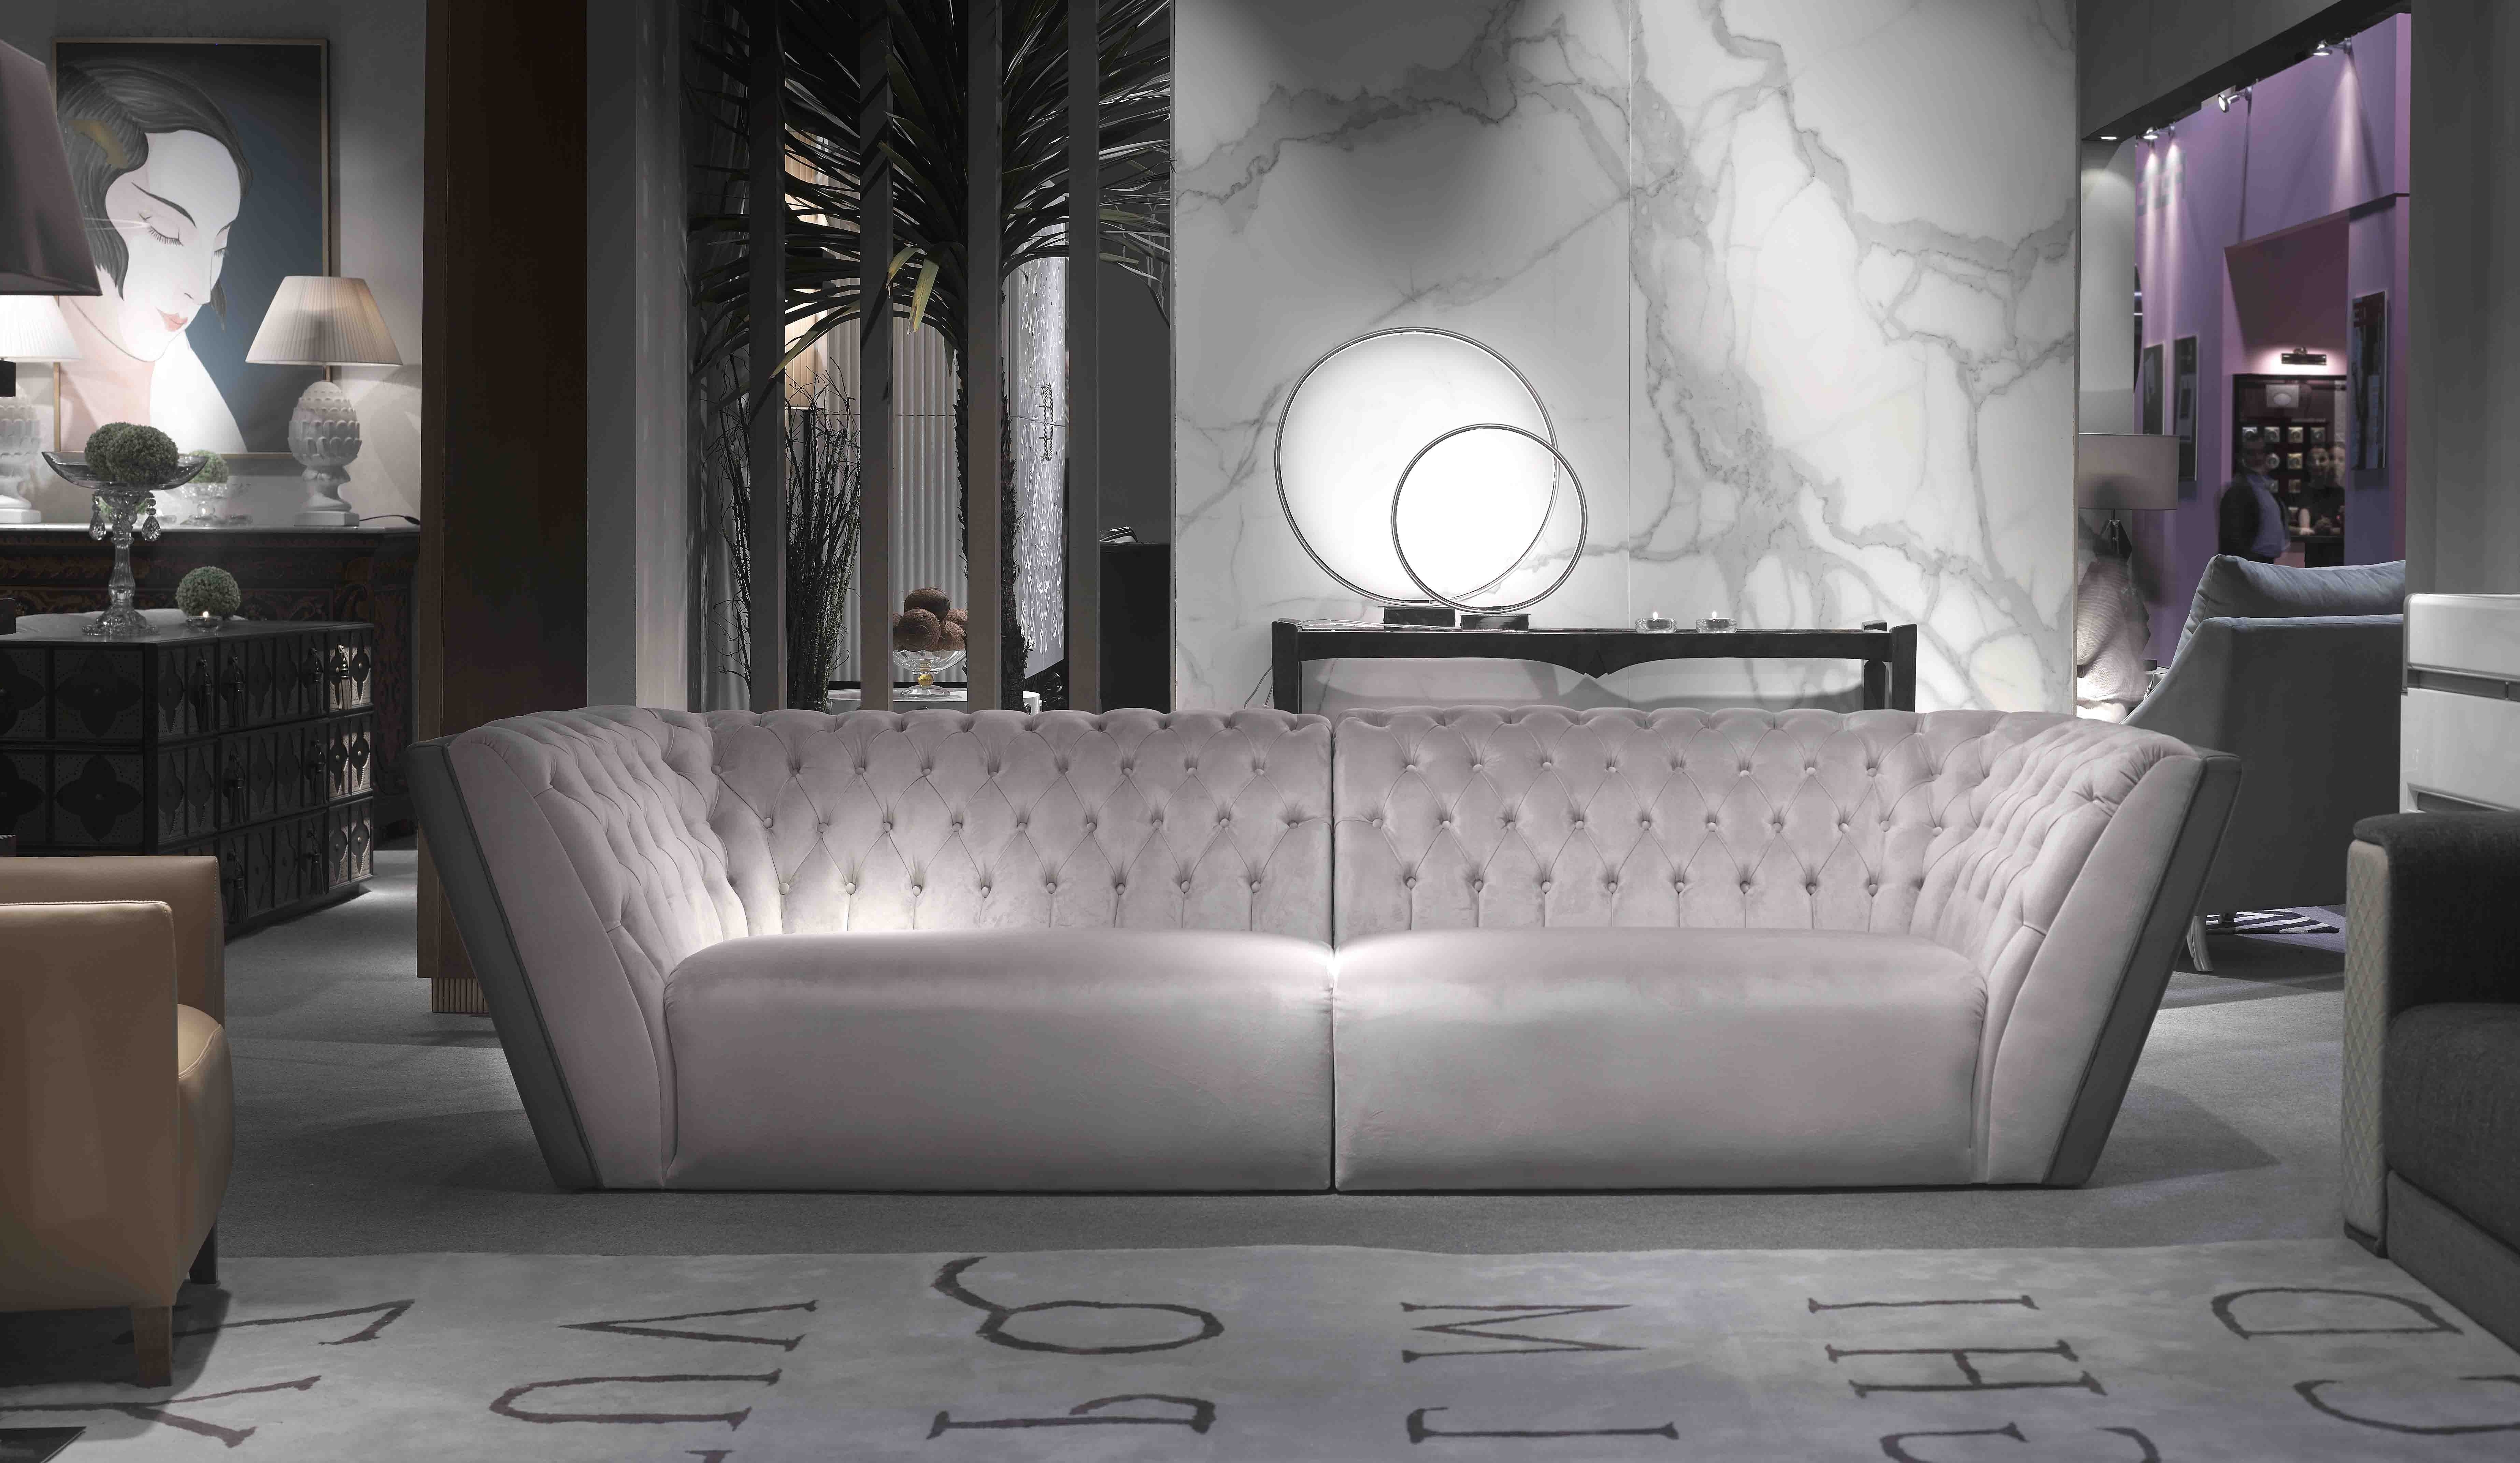 Luxury Sofas Pertaining To Trendy Buy Designer Furniture Elegant Designer Furniture Elegant Free (View 5 of 15)